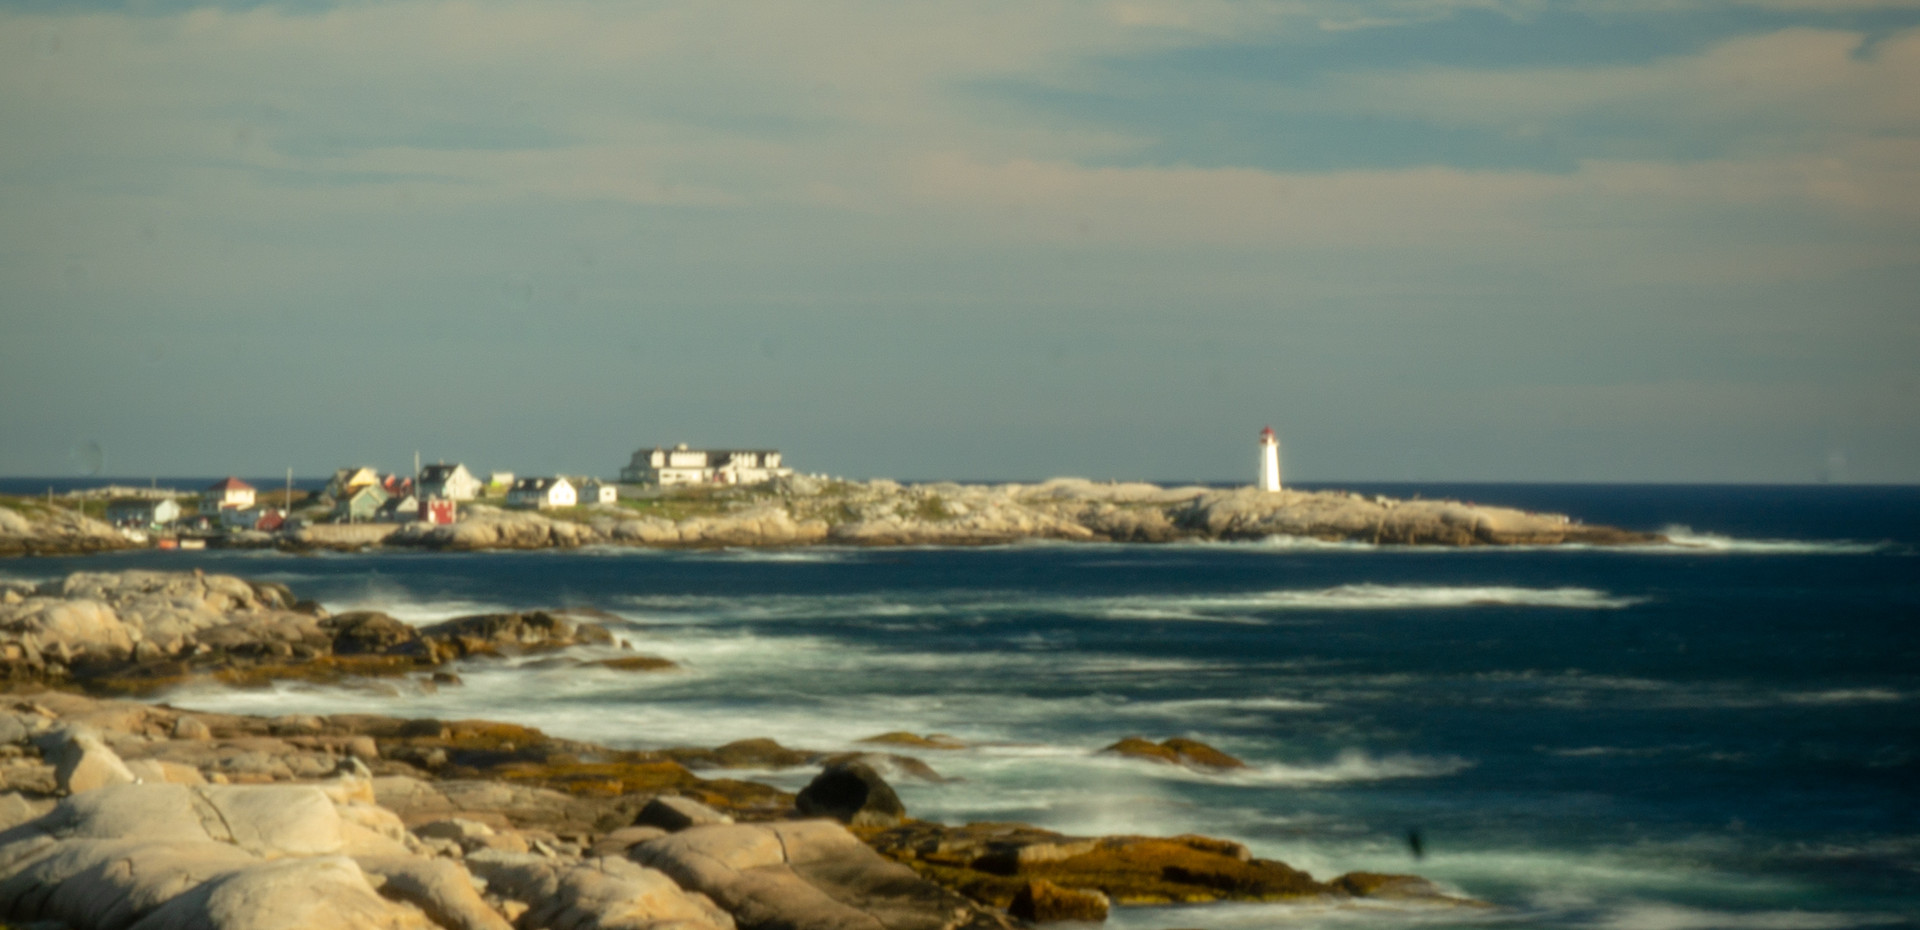 Wander the gorgeous shorelines in and around Peggy's Cove